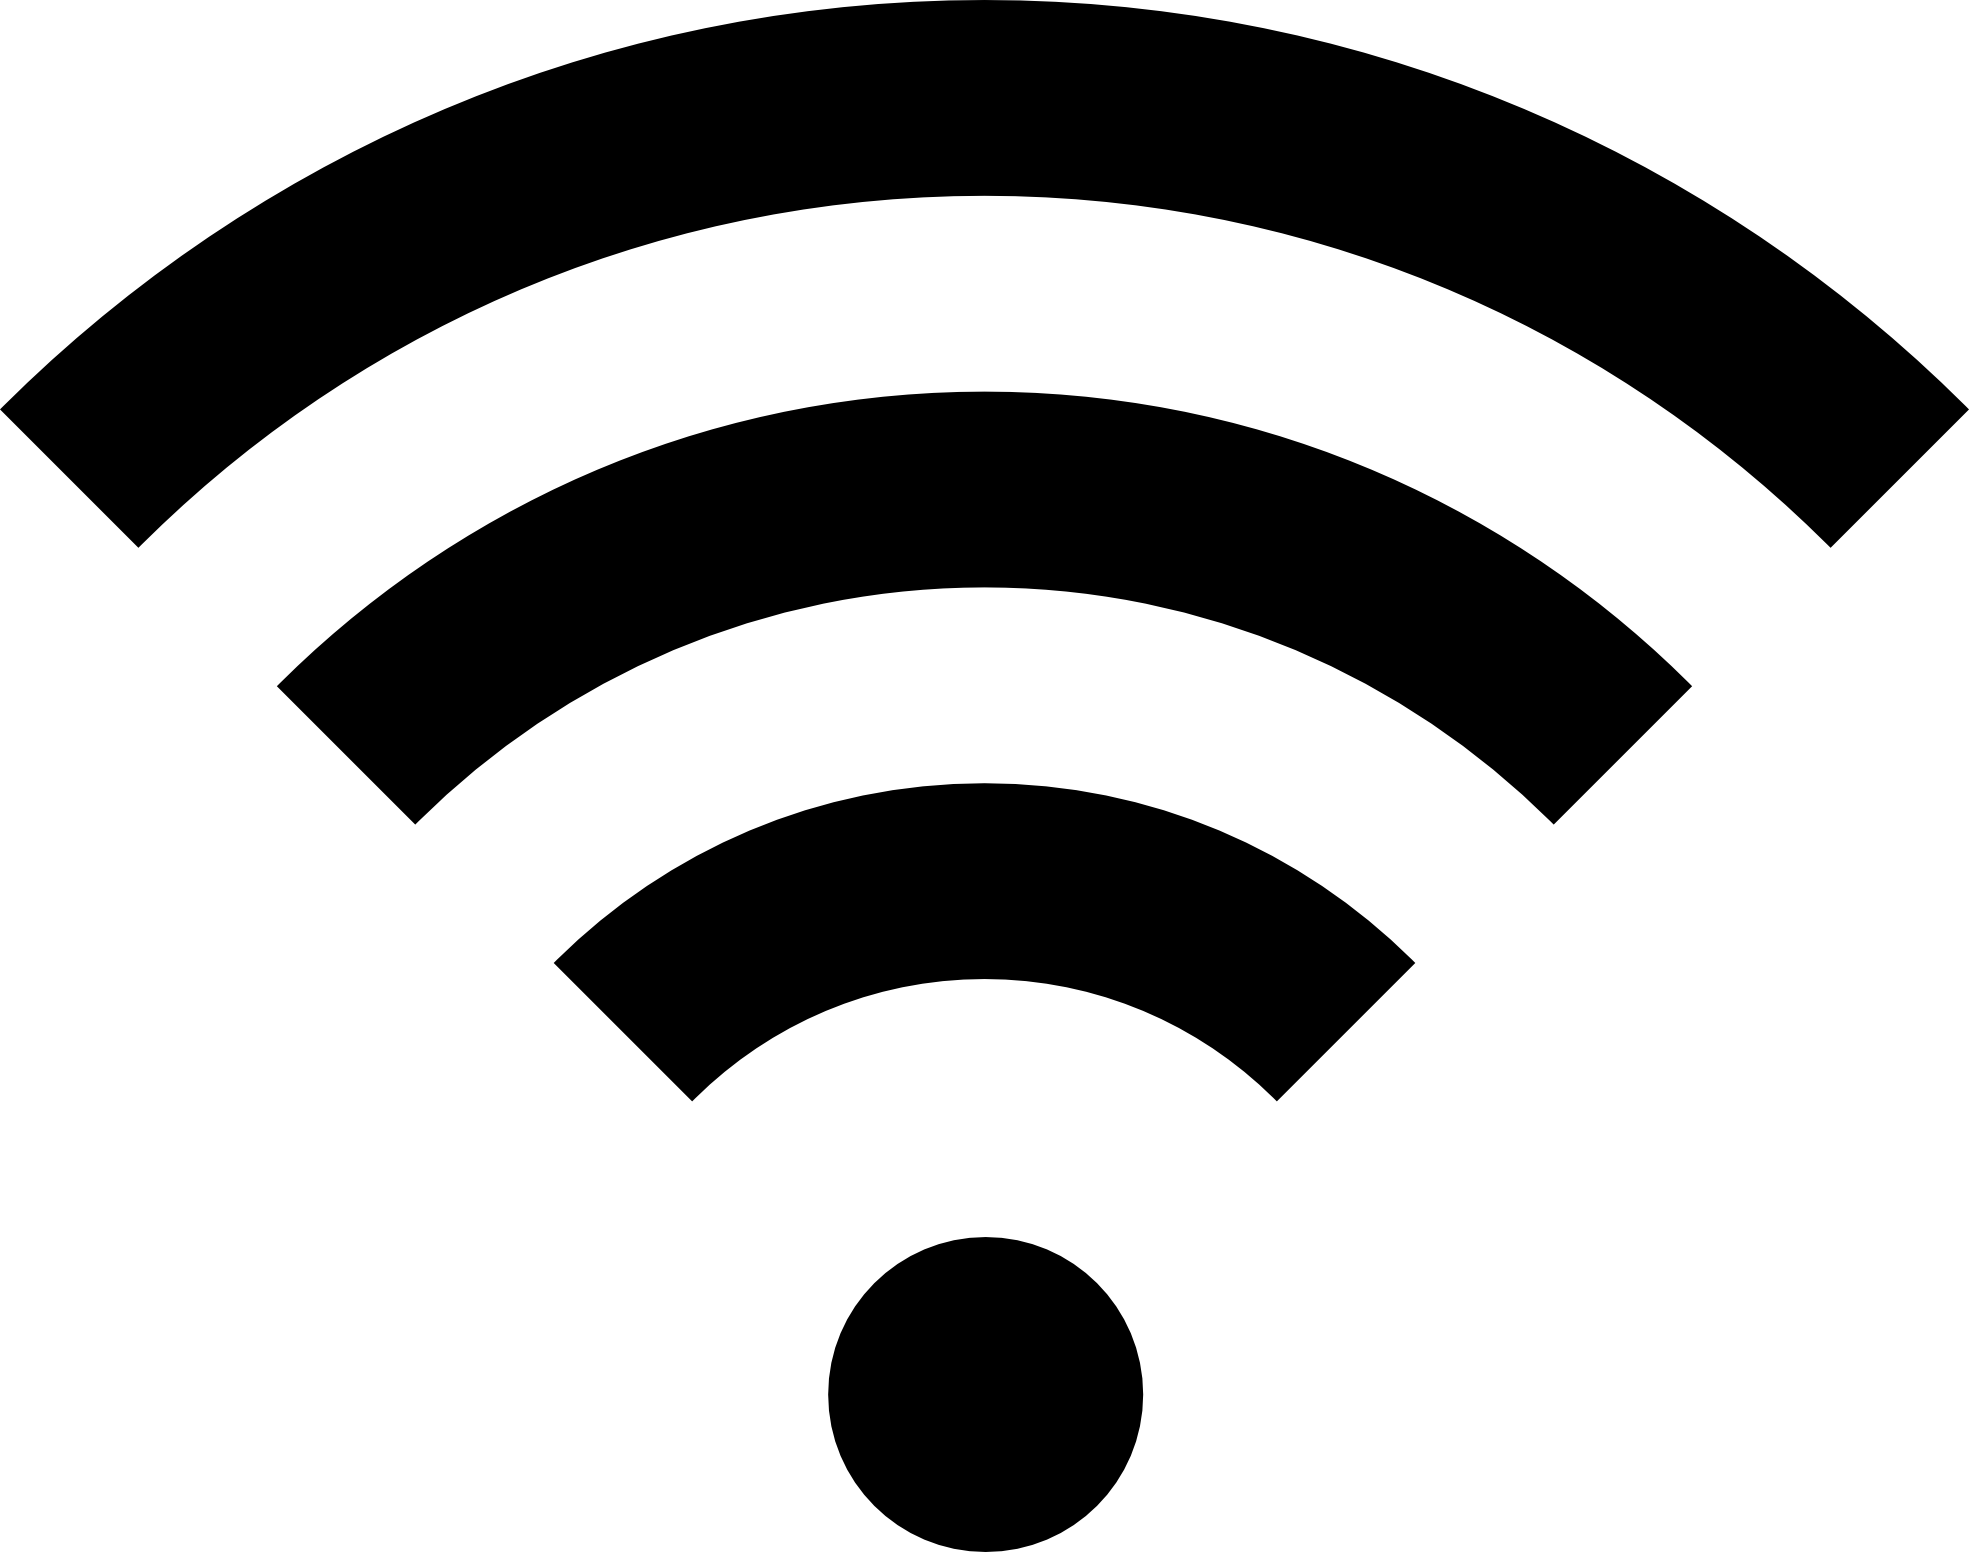 wireless logo icon